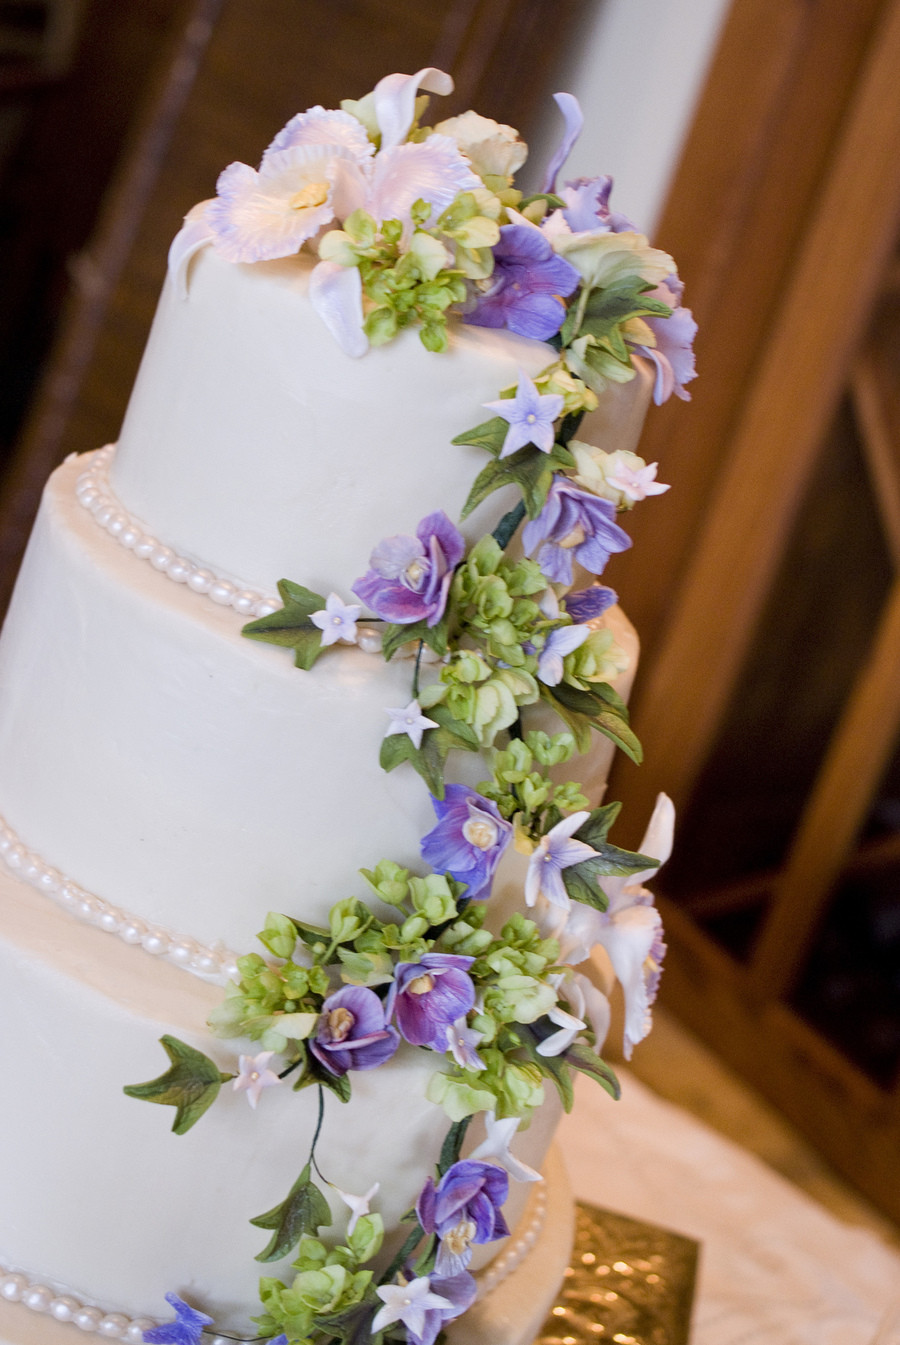 Sugar Flowers Wedding Cakes  Purple Orchid Sugar Flower Wedding Cake CakeCentral